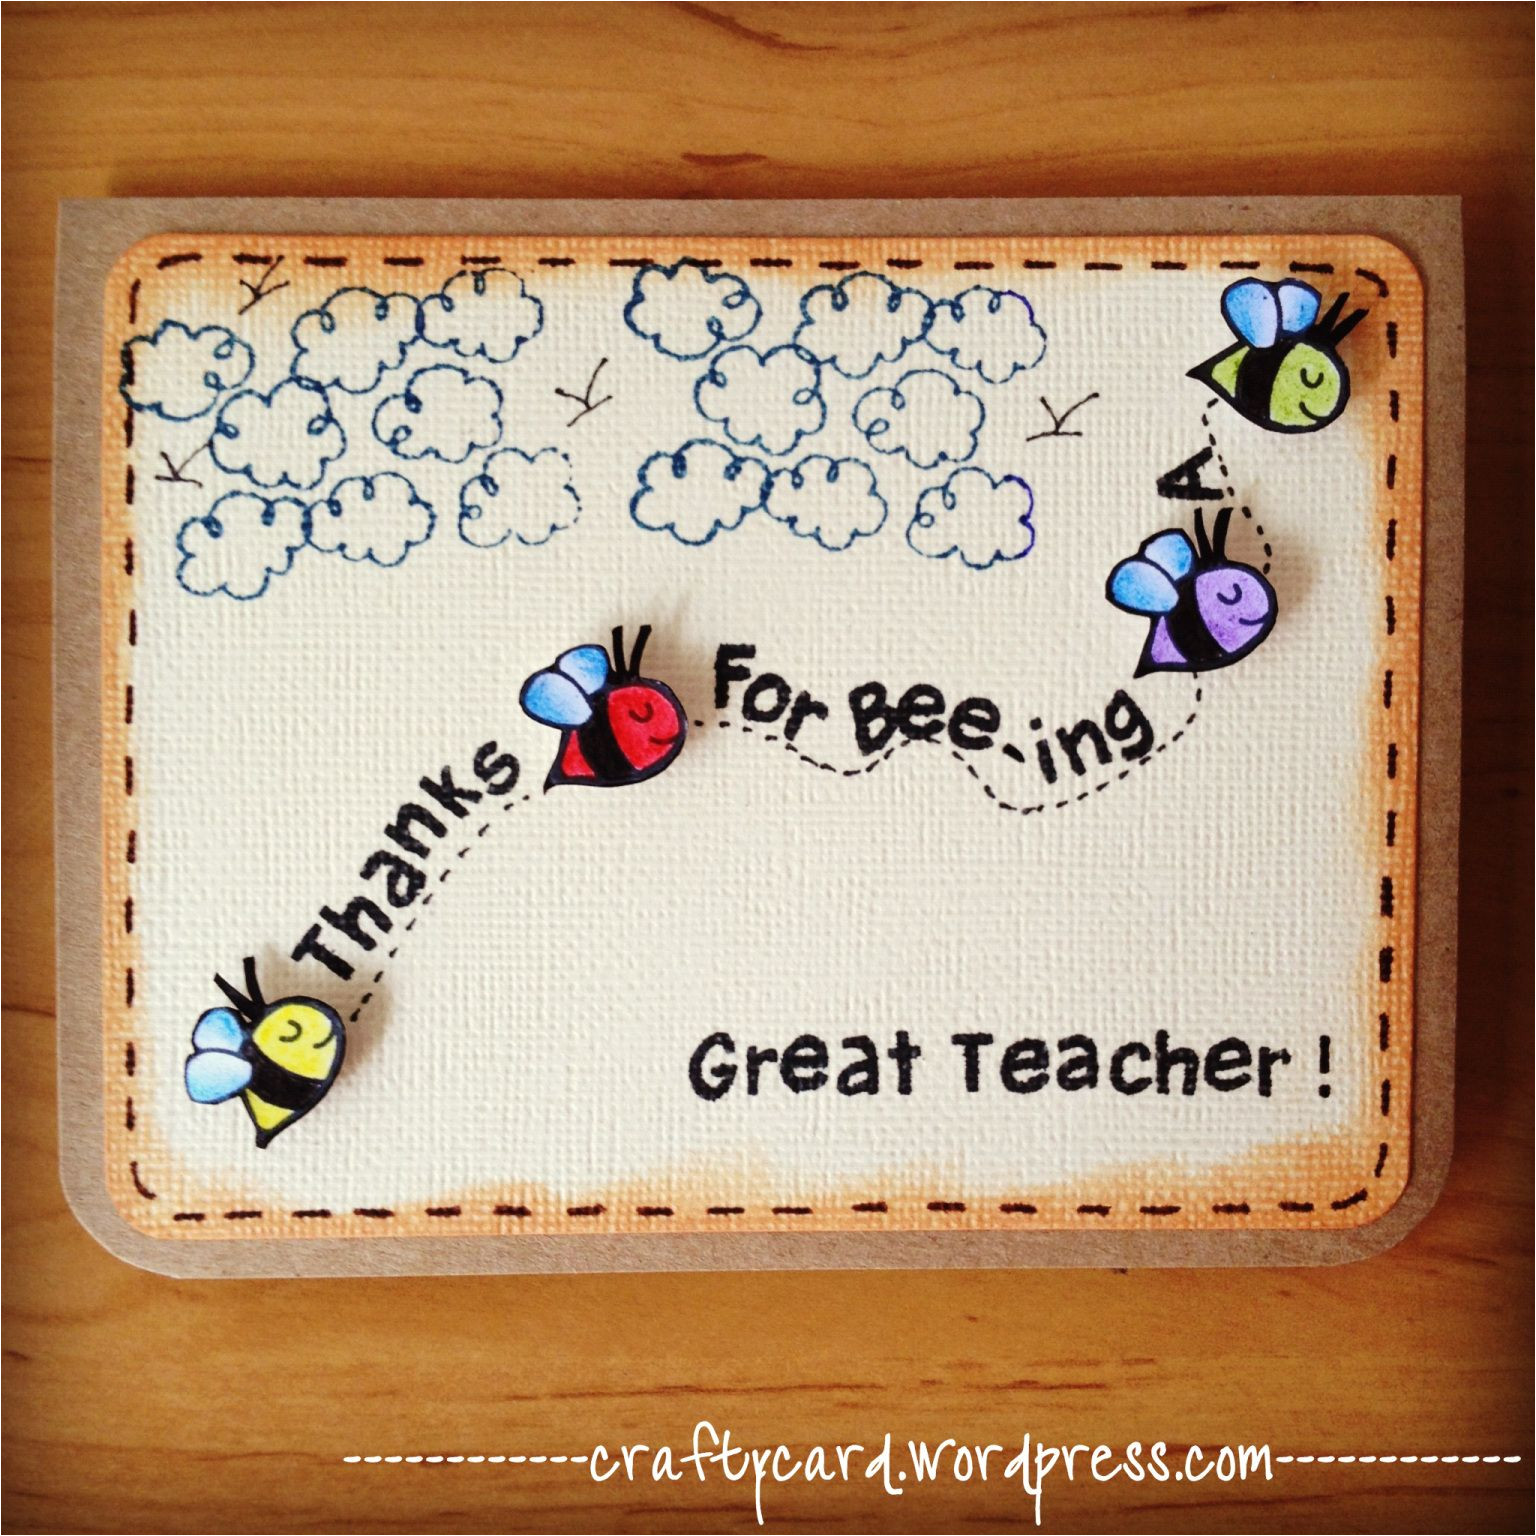 Teachers Day Handmade Greeting Card M203 Thanks for Bee Ing A Great Teacher with Images